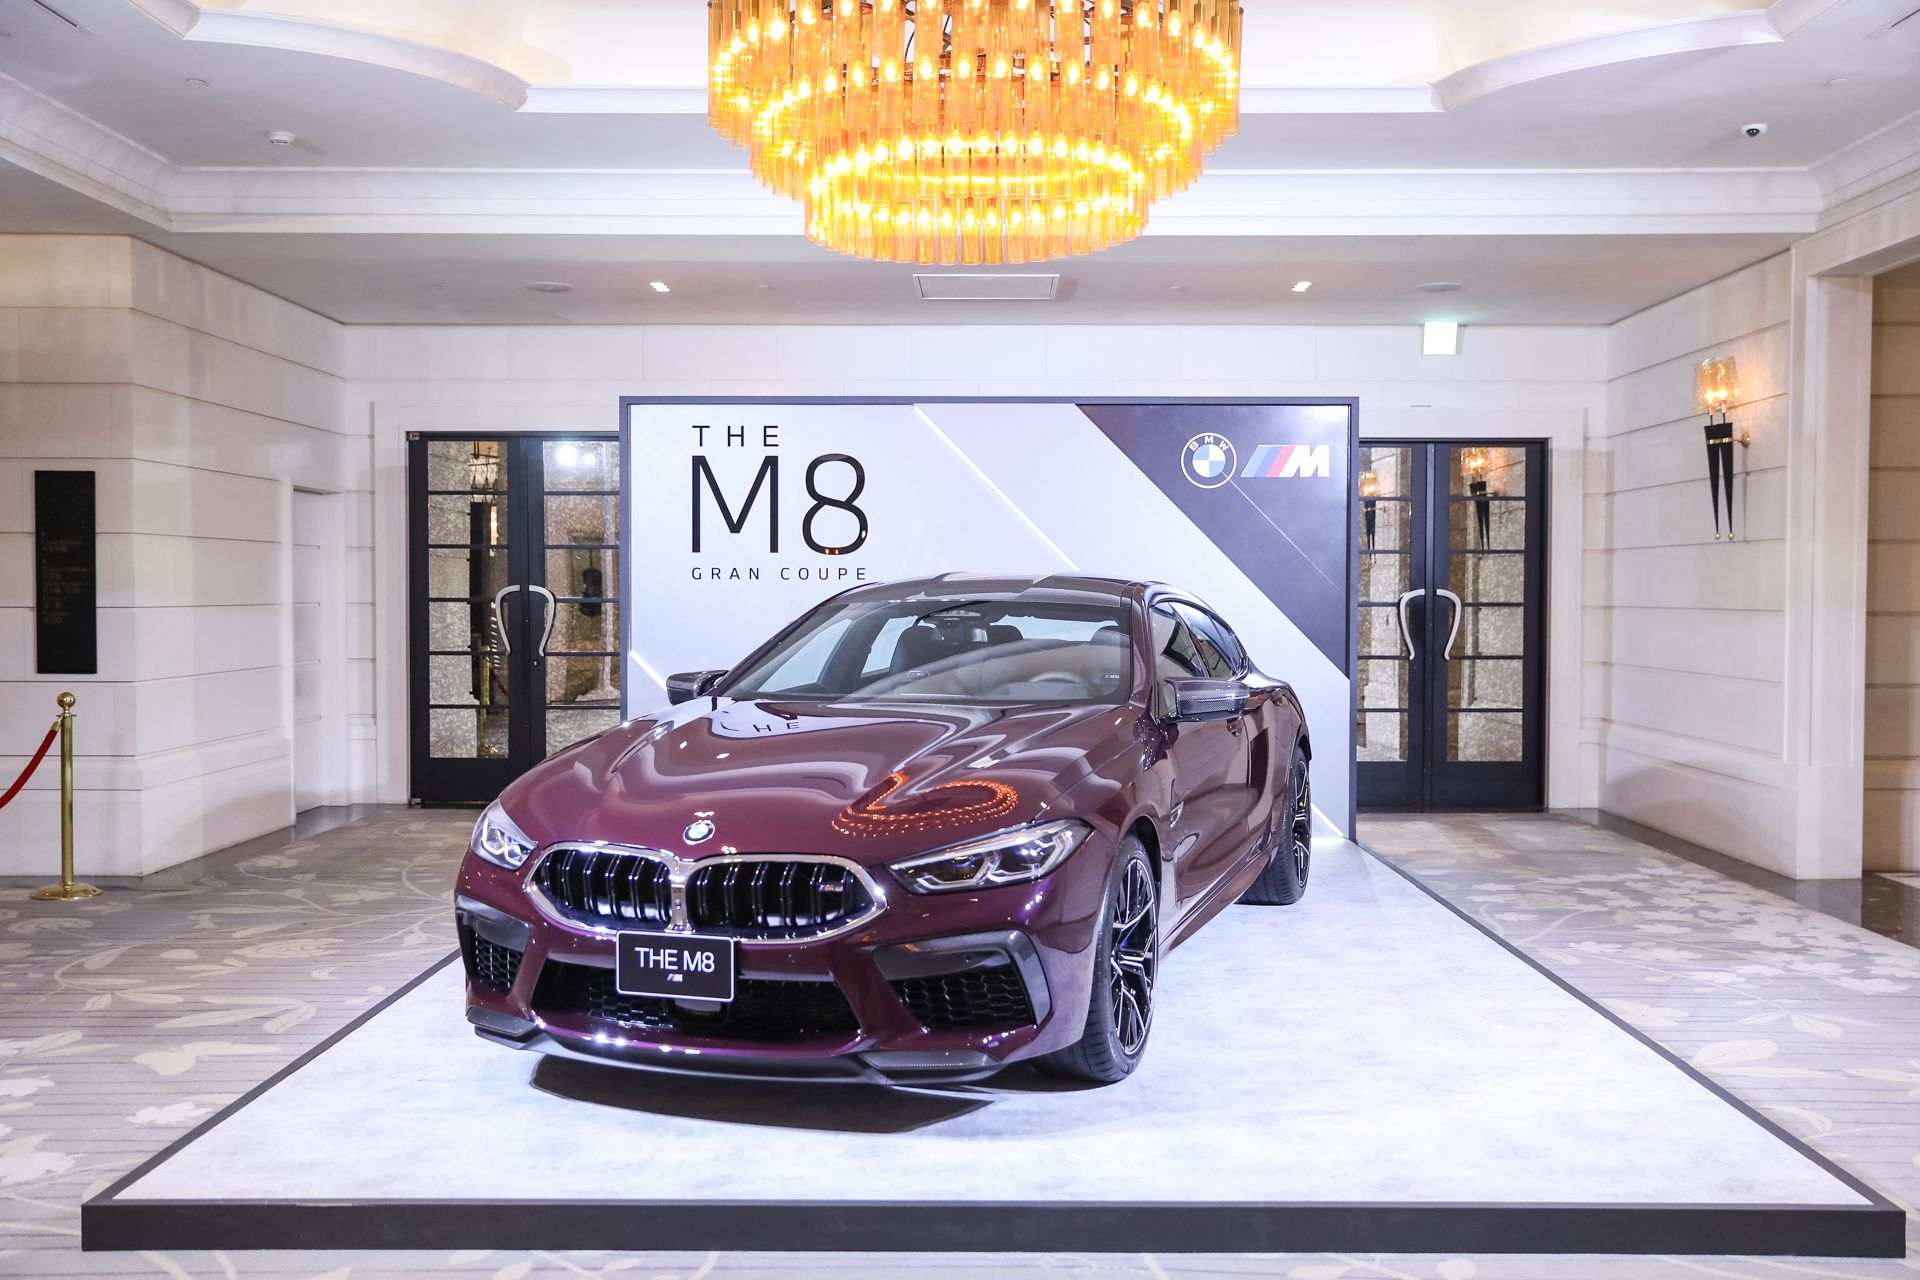 頂尖層峰人士指定坐騎,地表最強王者BMW M8 Gran Coupe成功奪取2020 Tatler Ball全場焦點!